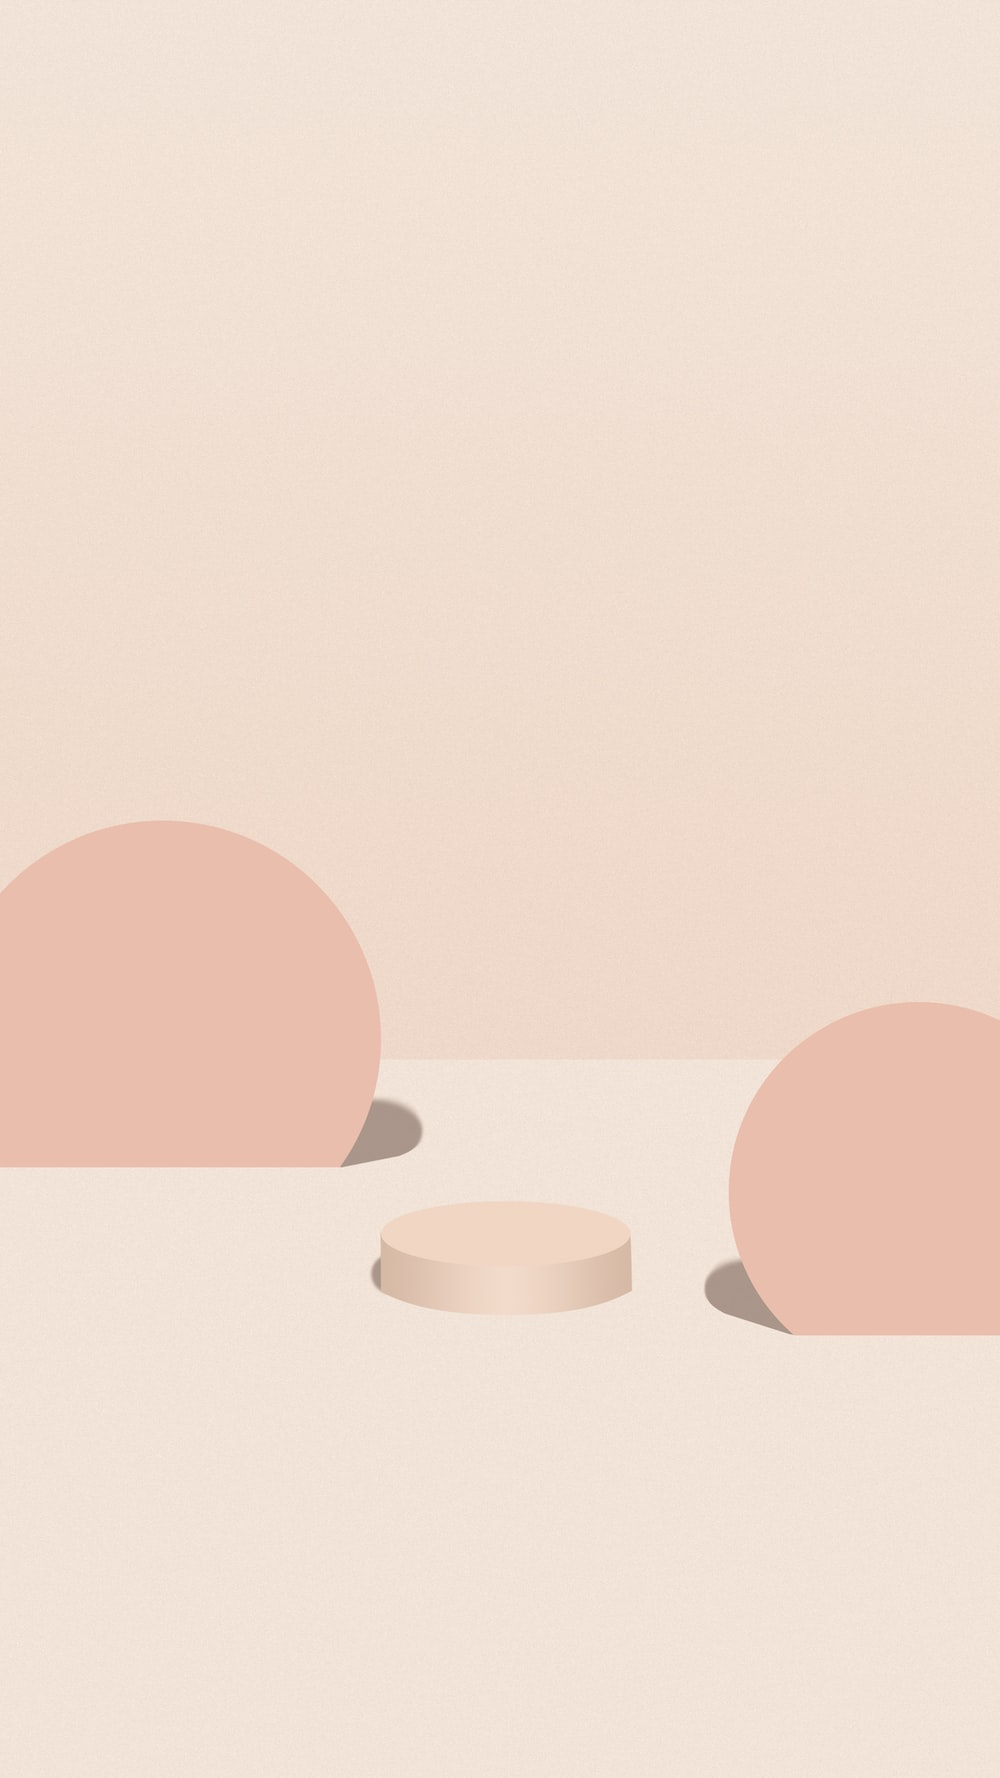 pink and white round illustration